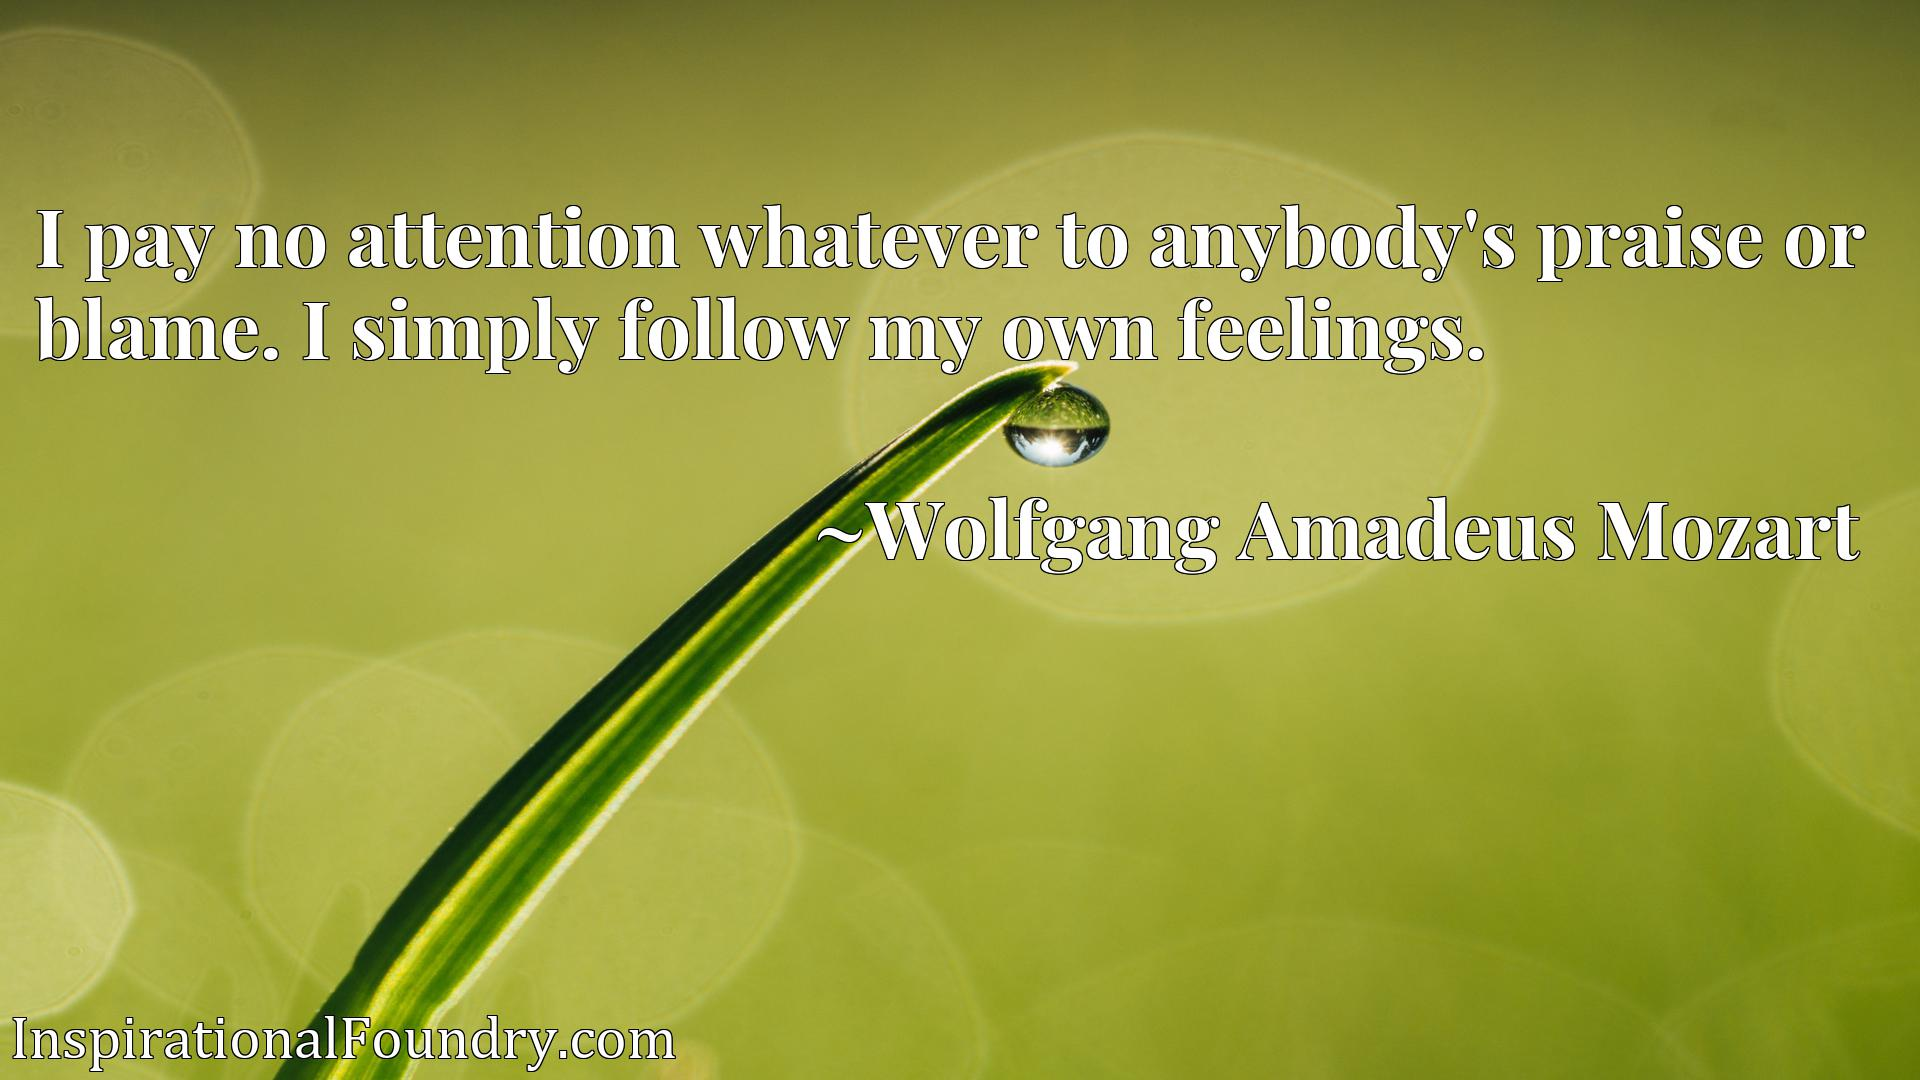 Quote Picture :I pay no attention whatever to anybody's praise or blame. I simply follow my own feelings.